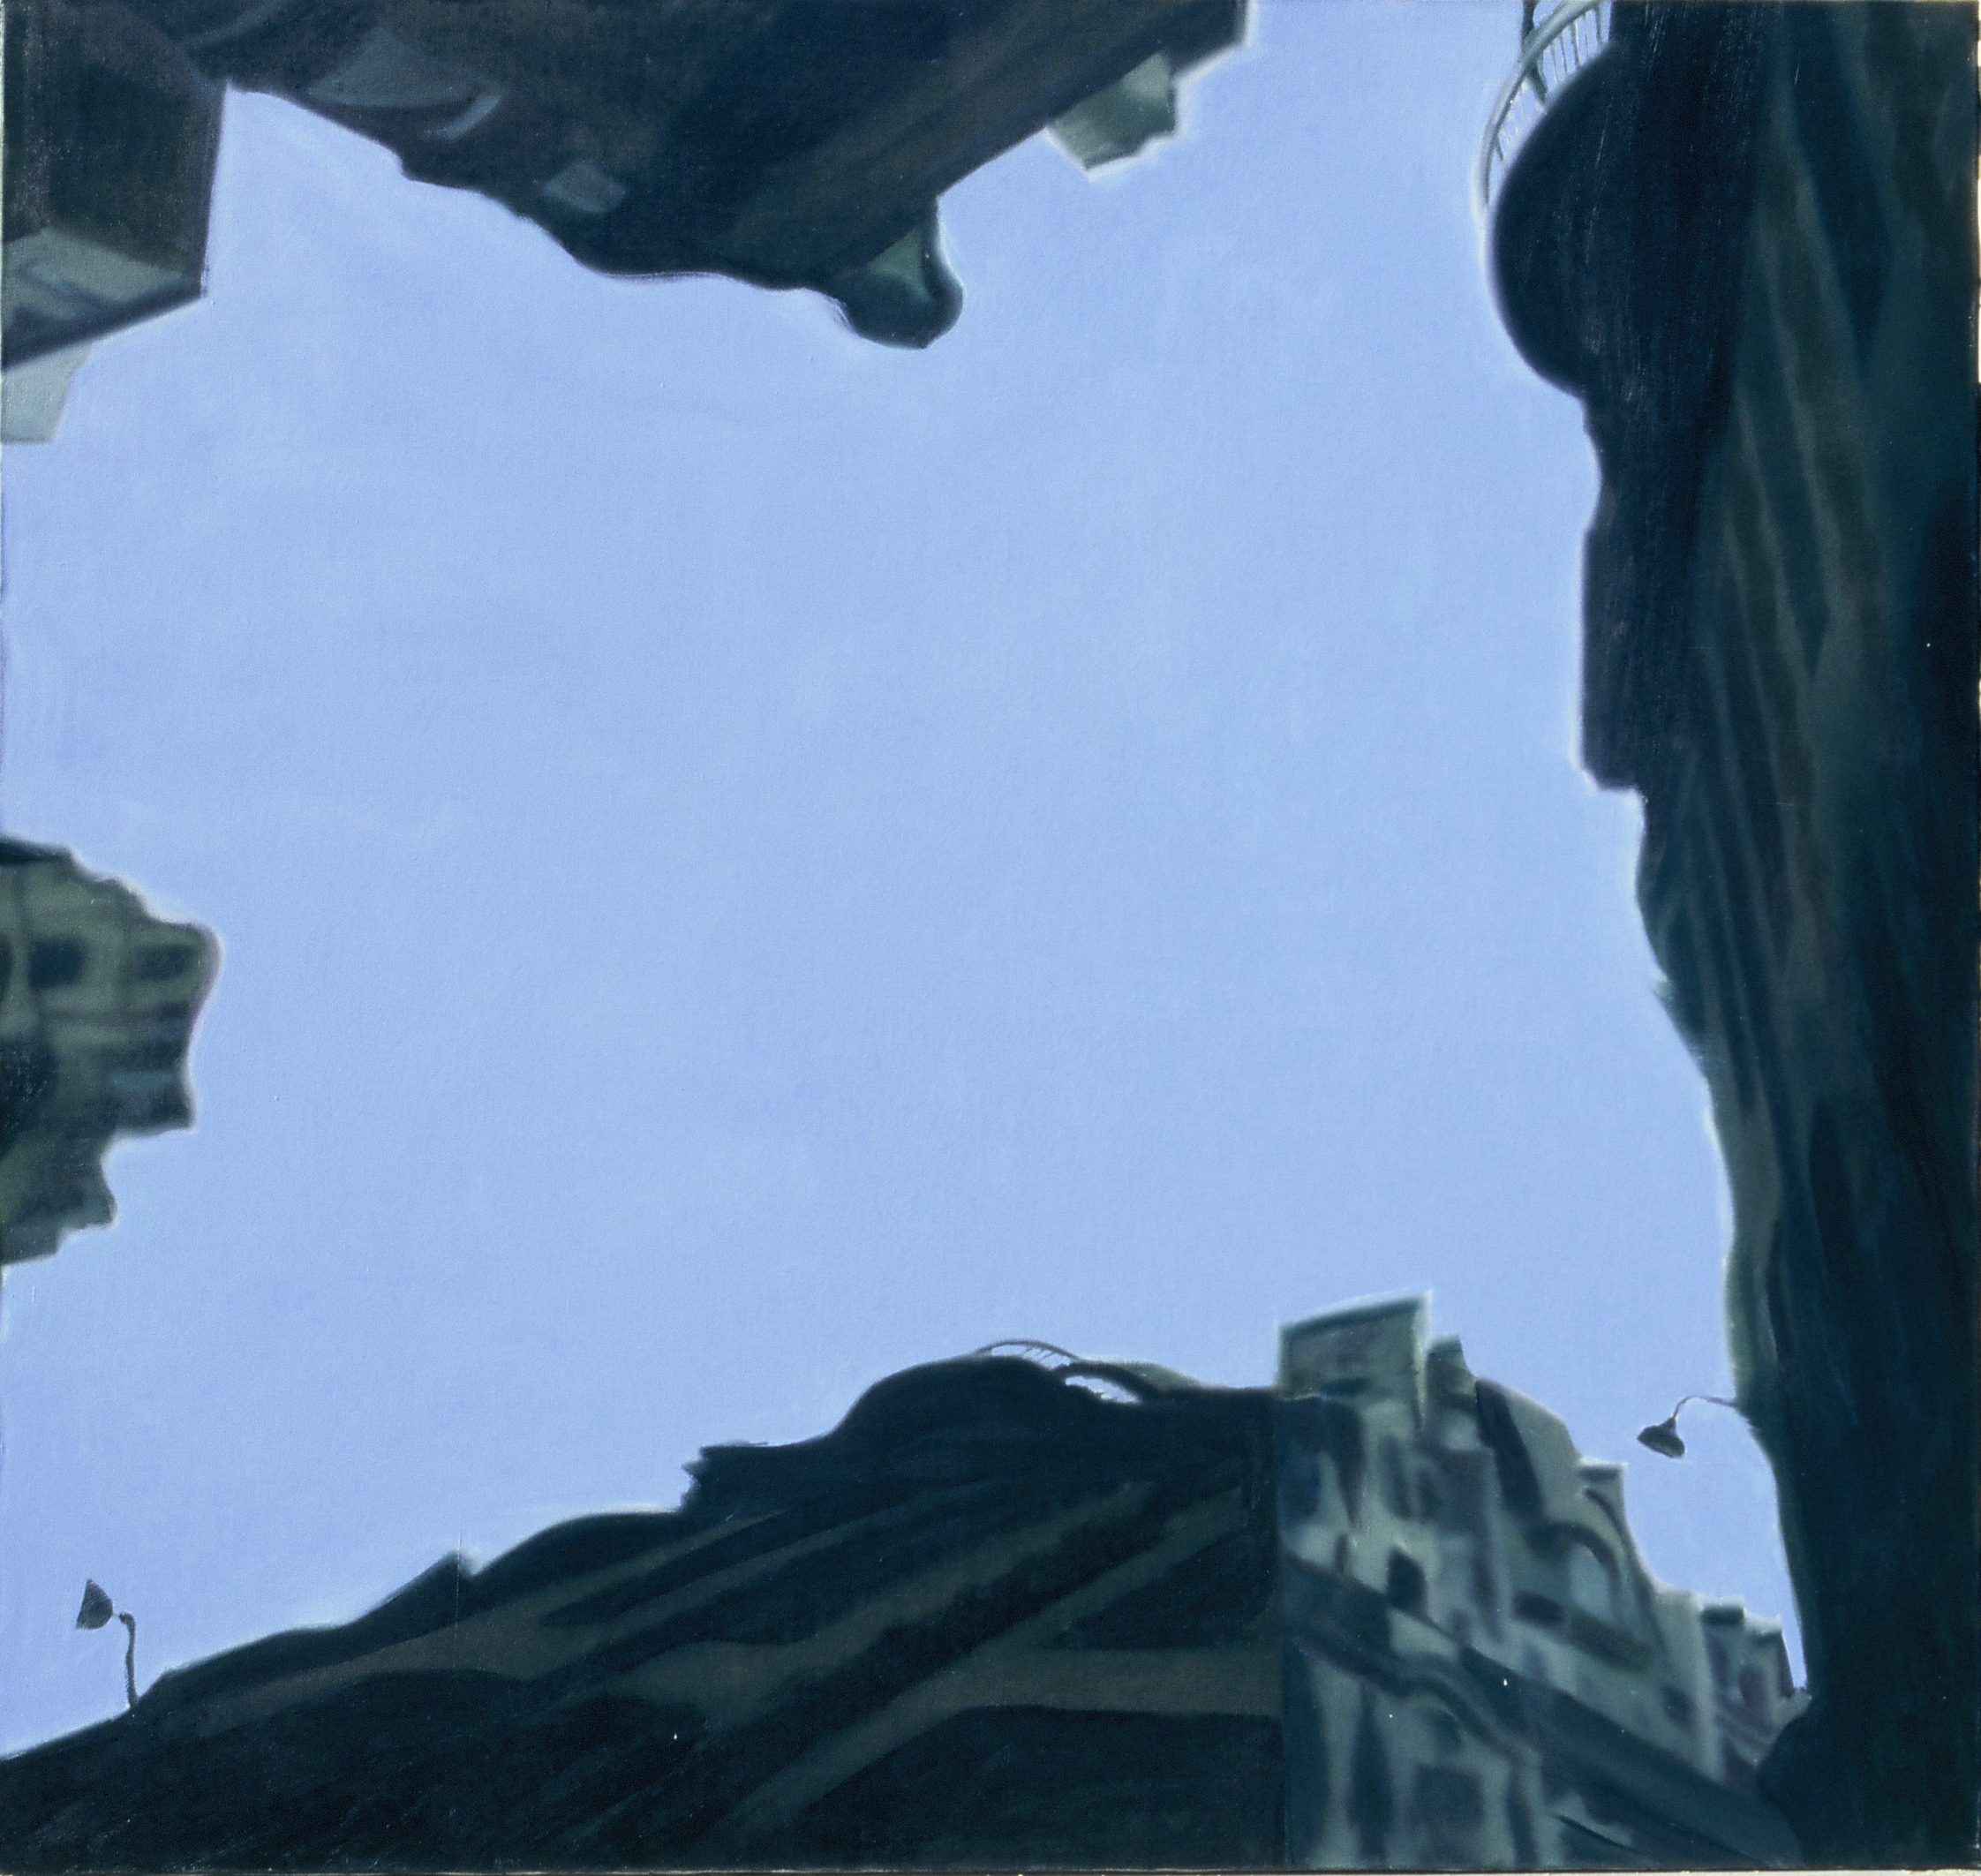 Syntax 4 , 2002, oil on canvas, 140 x 150cm. Private collection, France